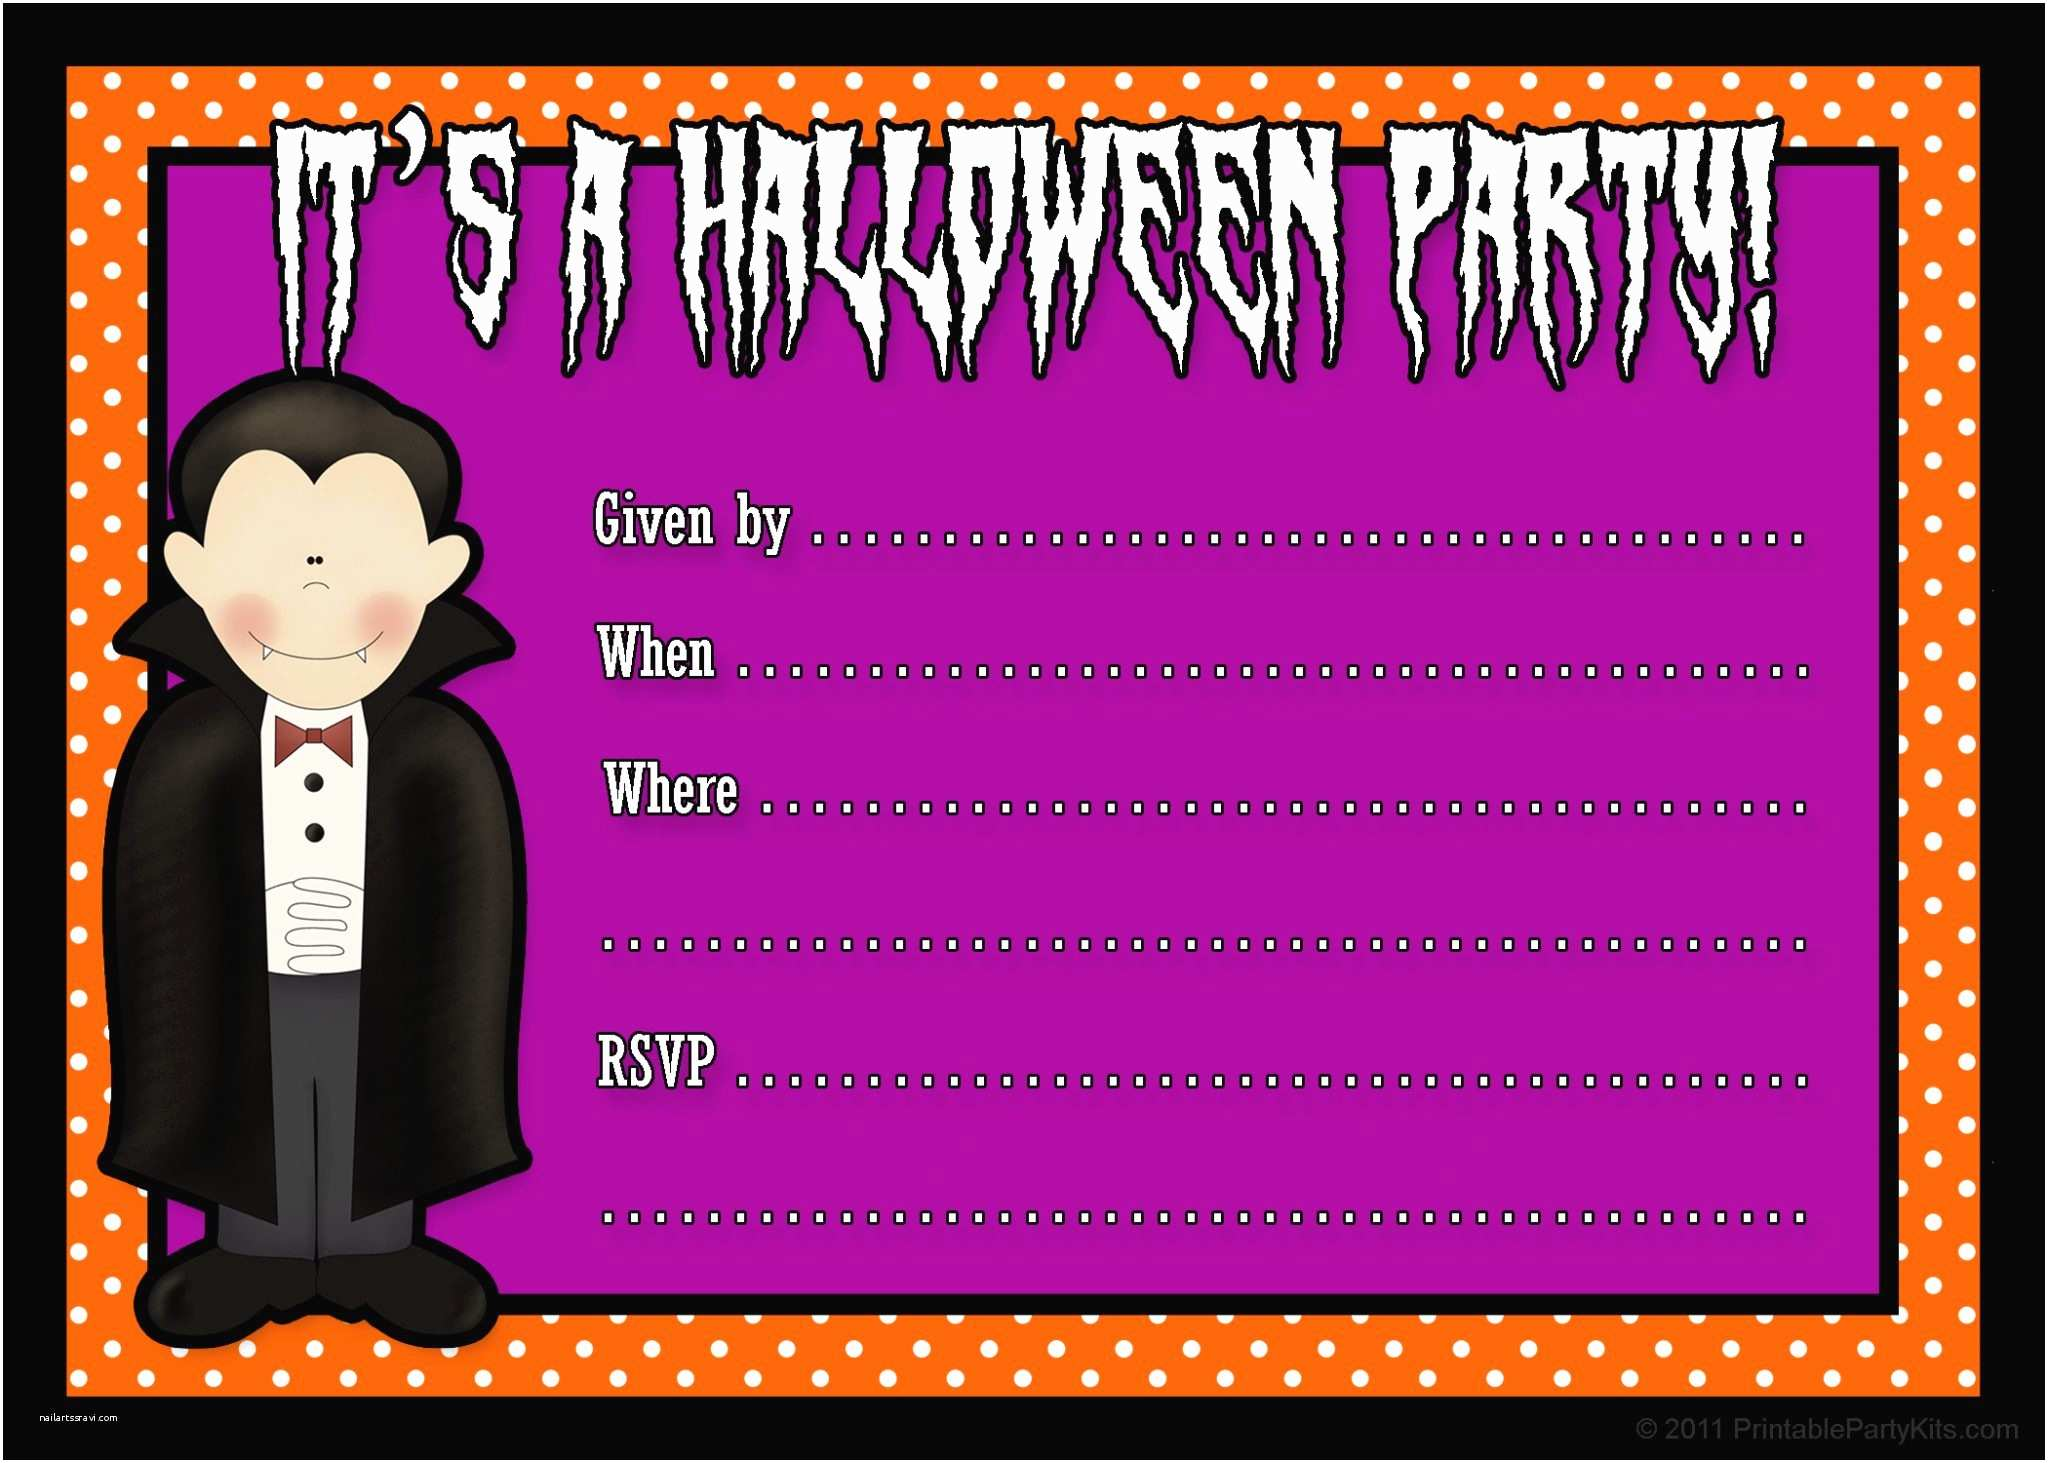 Halloween Party Invitation Template Invitations